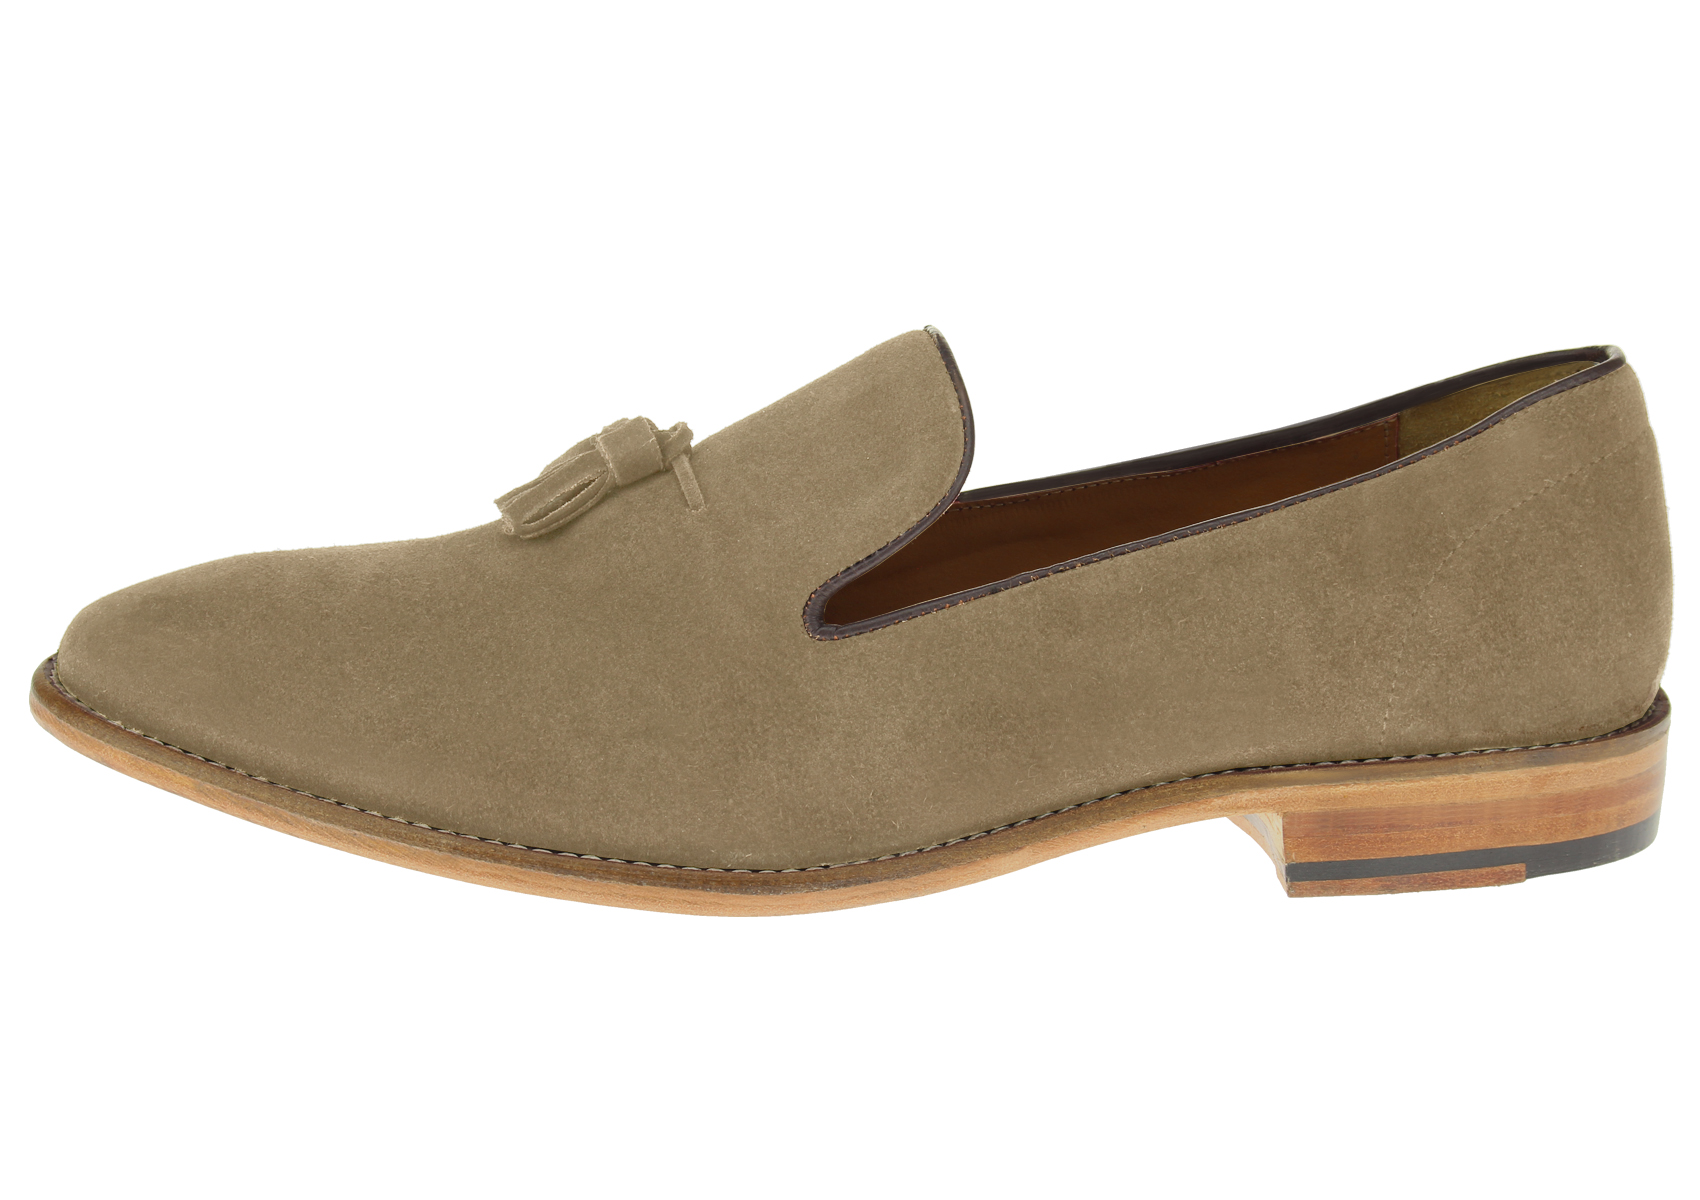 LN LUCIANO NATAZZI Mens Suede Leather Shoe Kimo Slip-On Driving Moccasin